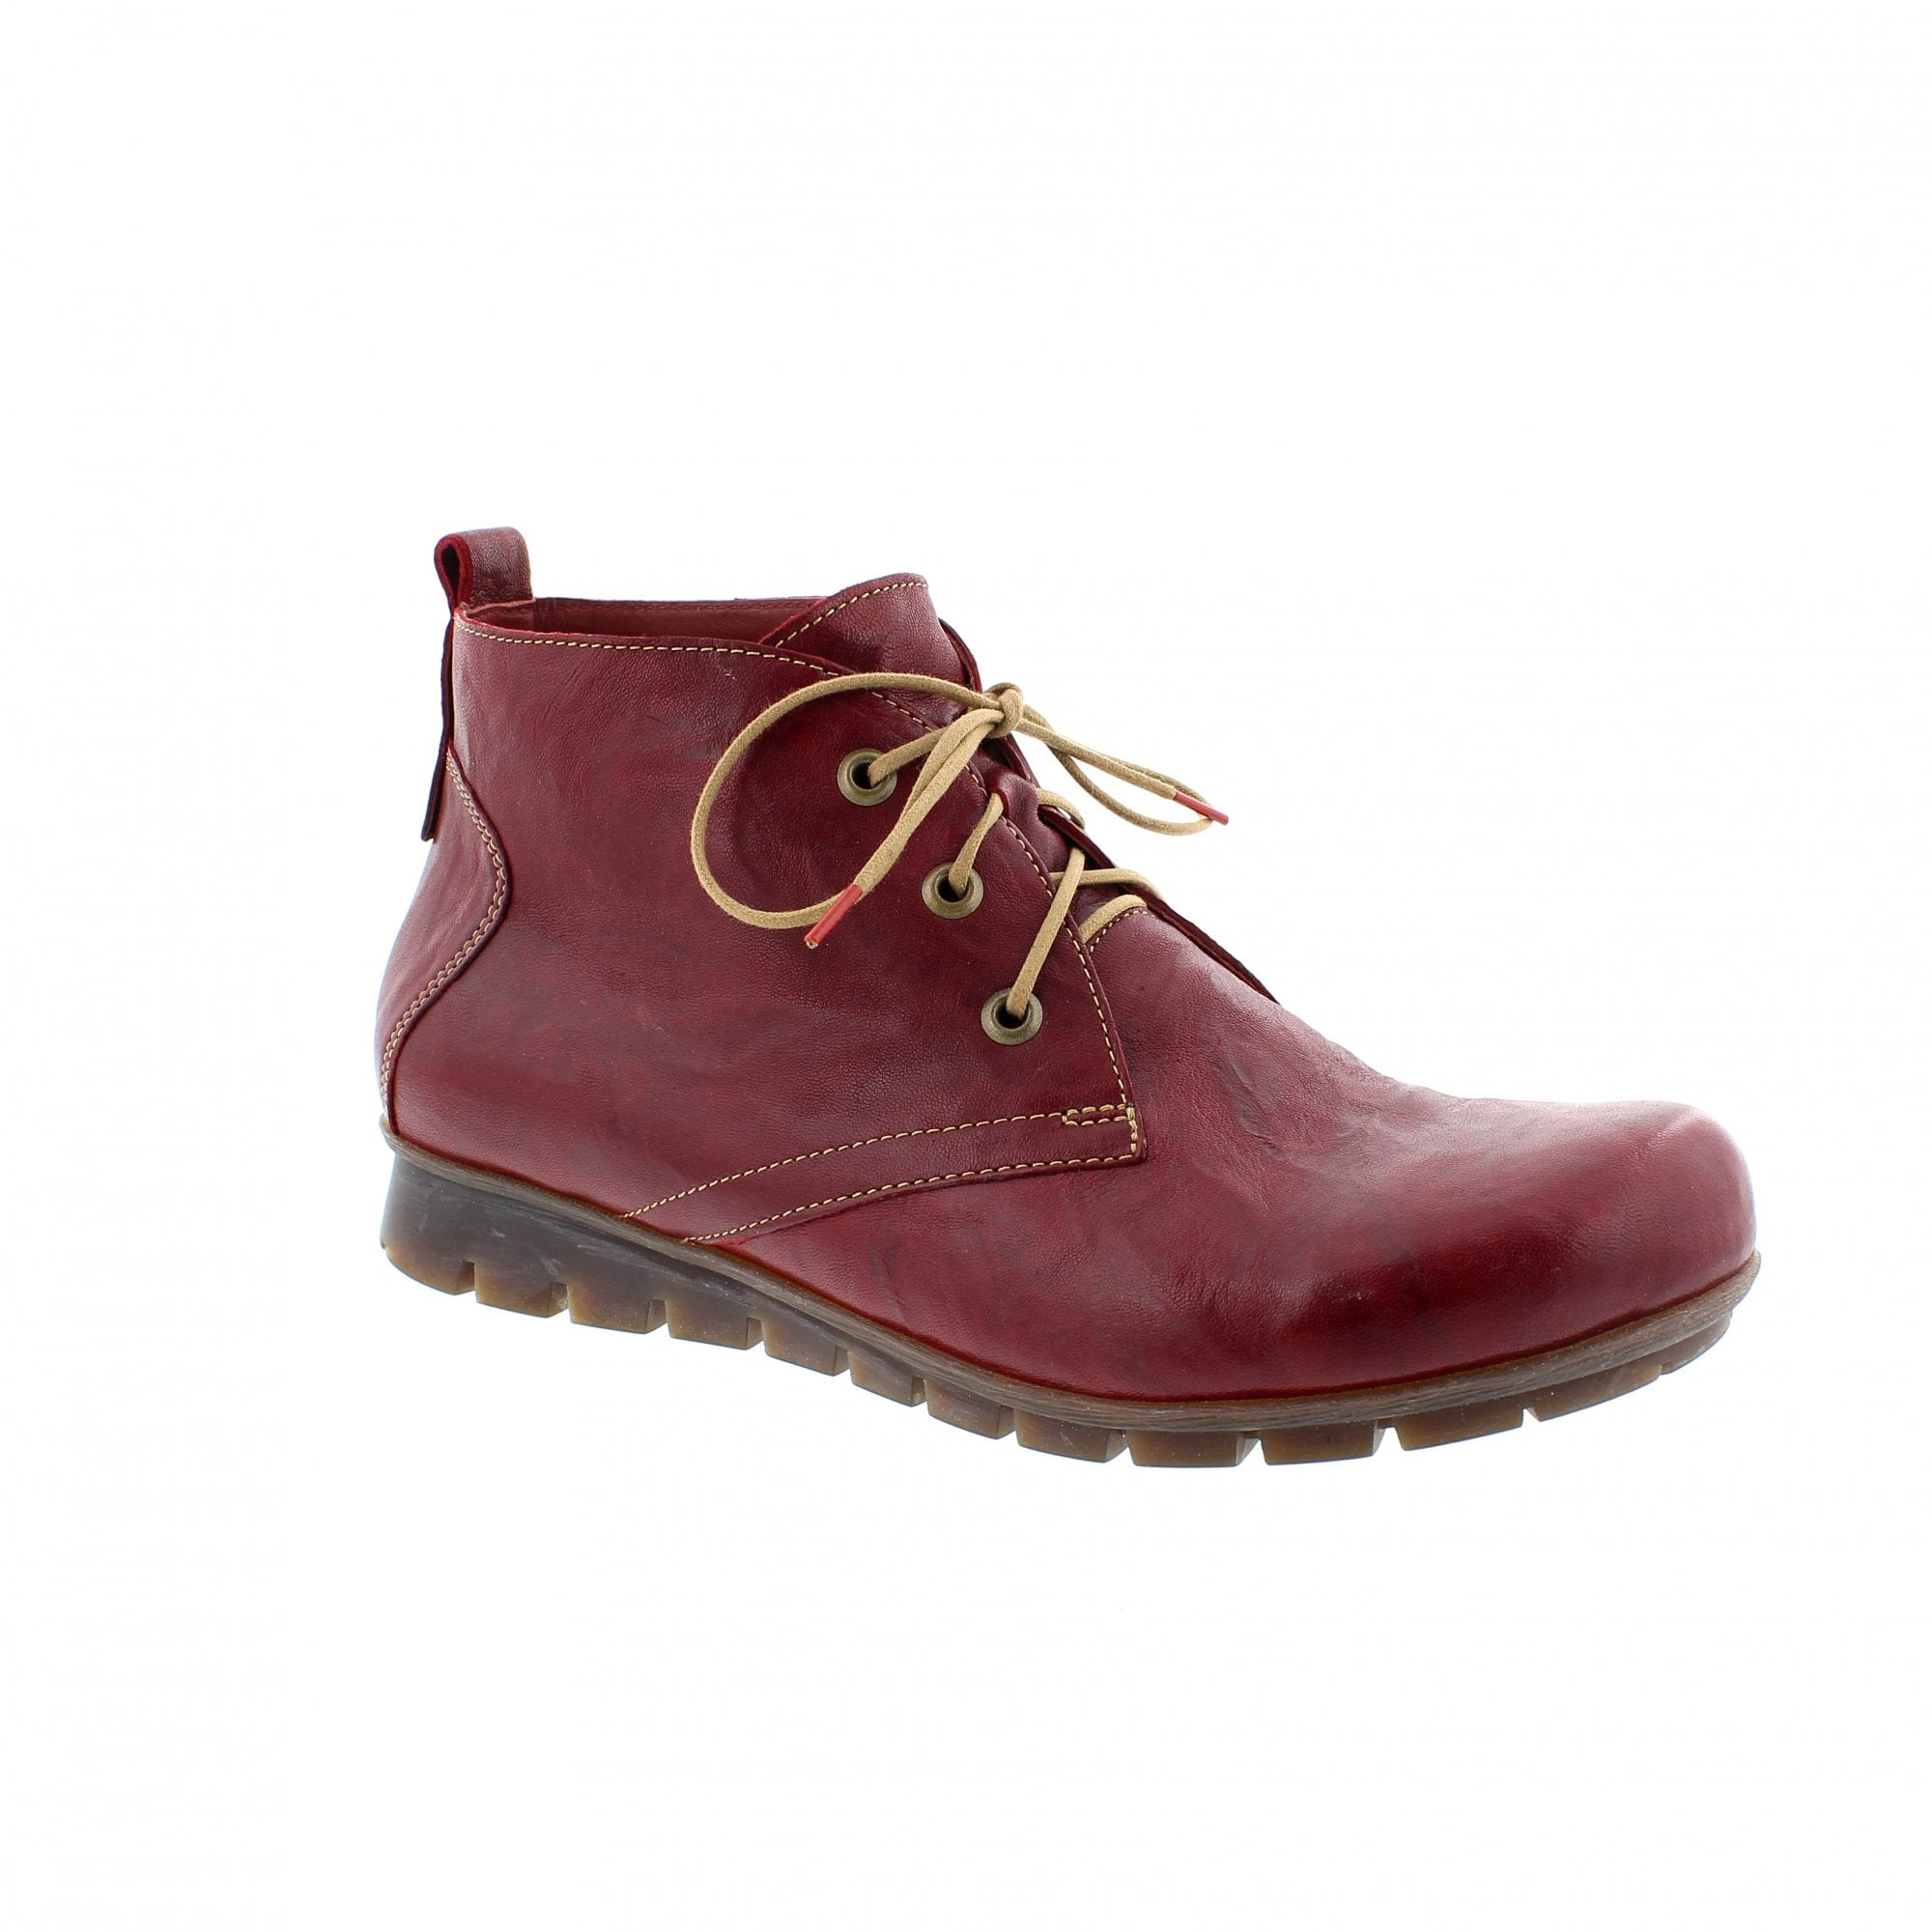 870857fccde24d Think! Menscha 81074-72Womens Ankle Boots